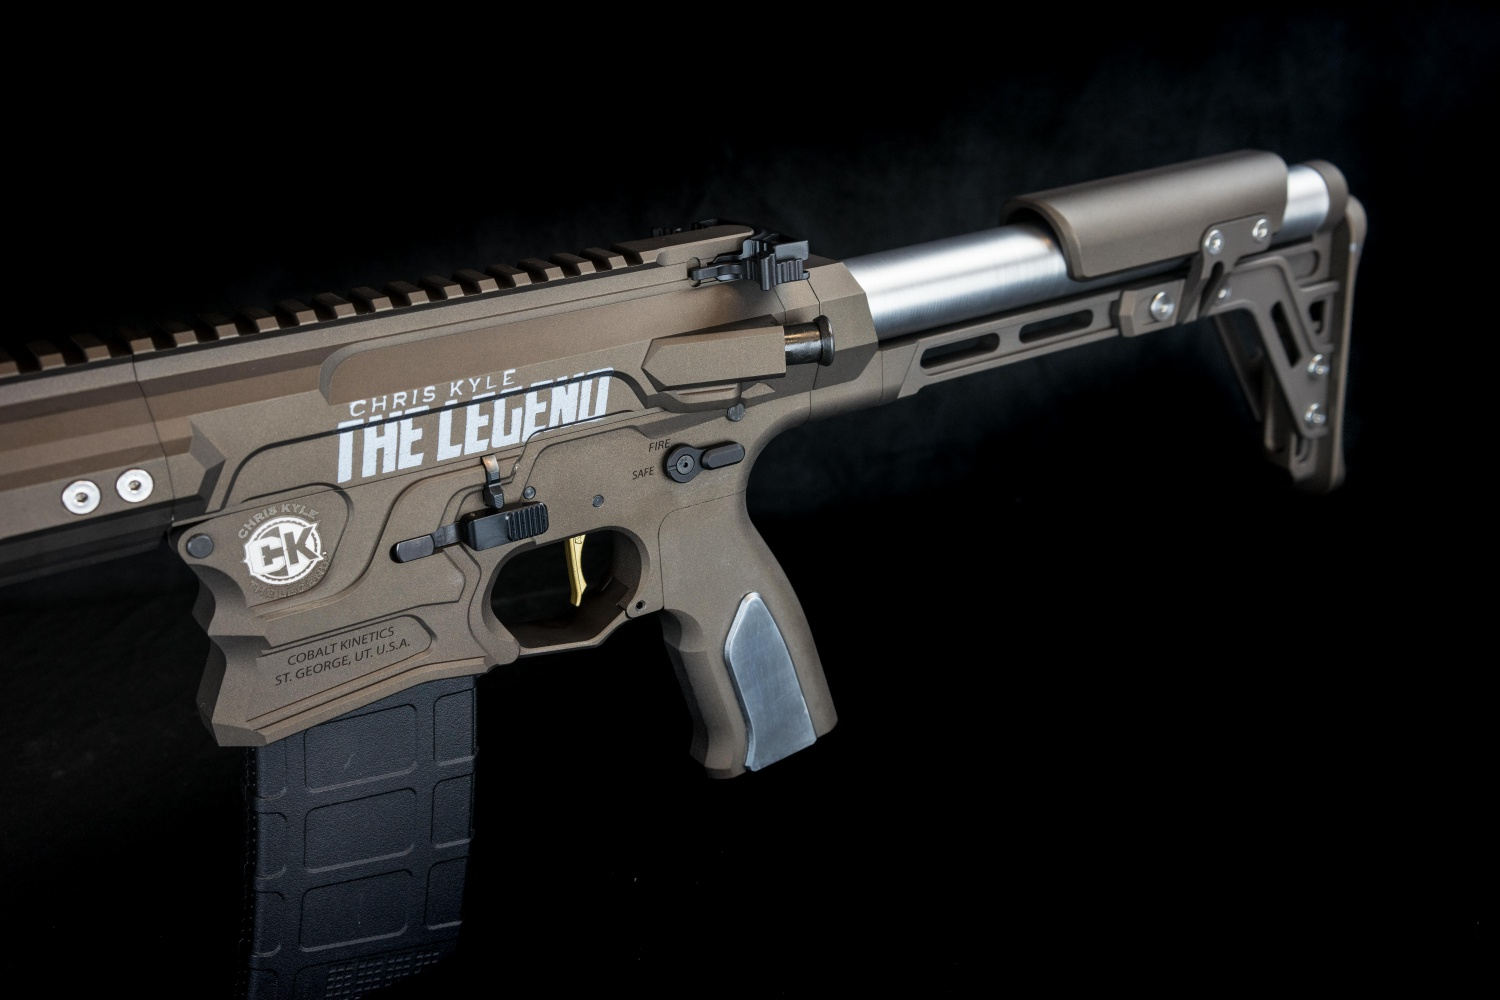 """Chris Kyle The Legend"" Logo premiering on this rifle."